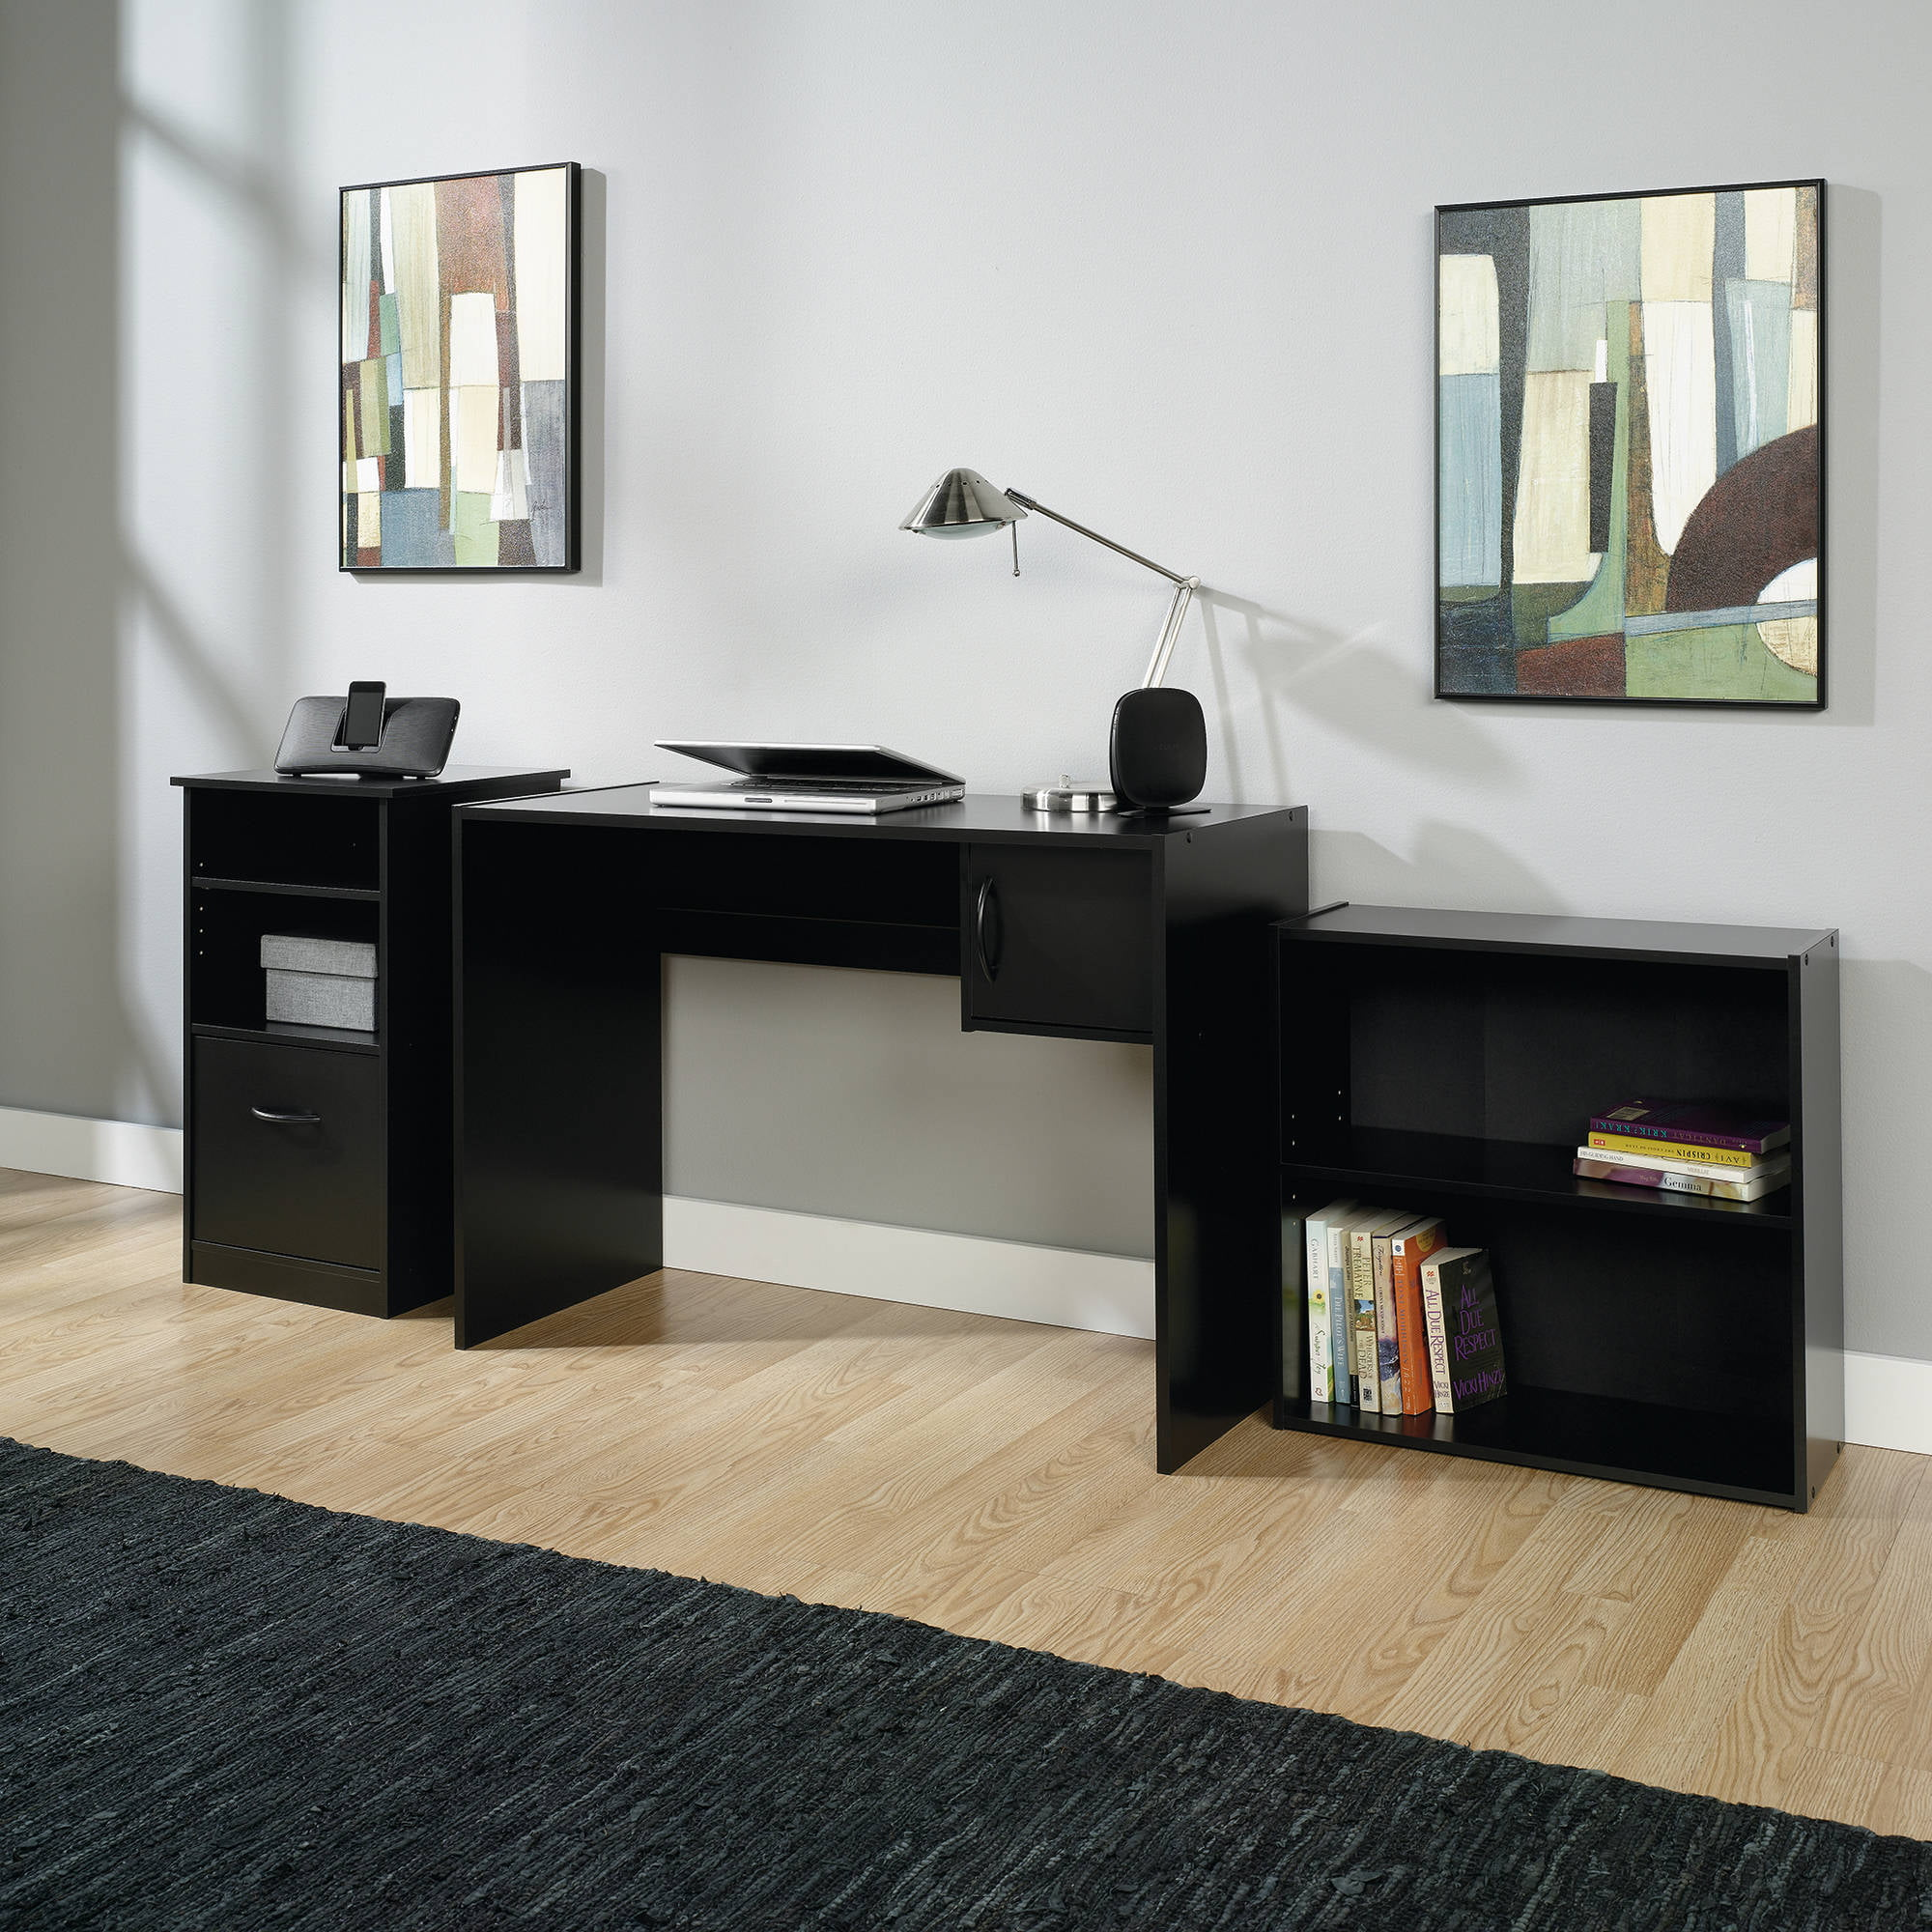 Home Office Desk Furniture modern executive desk google search office pinterest modern executive desk desks and google search Mainstays 3 Piece Office Set Black Walmartcom